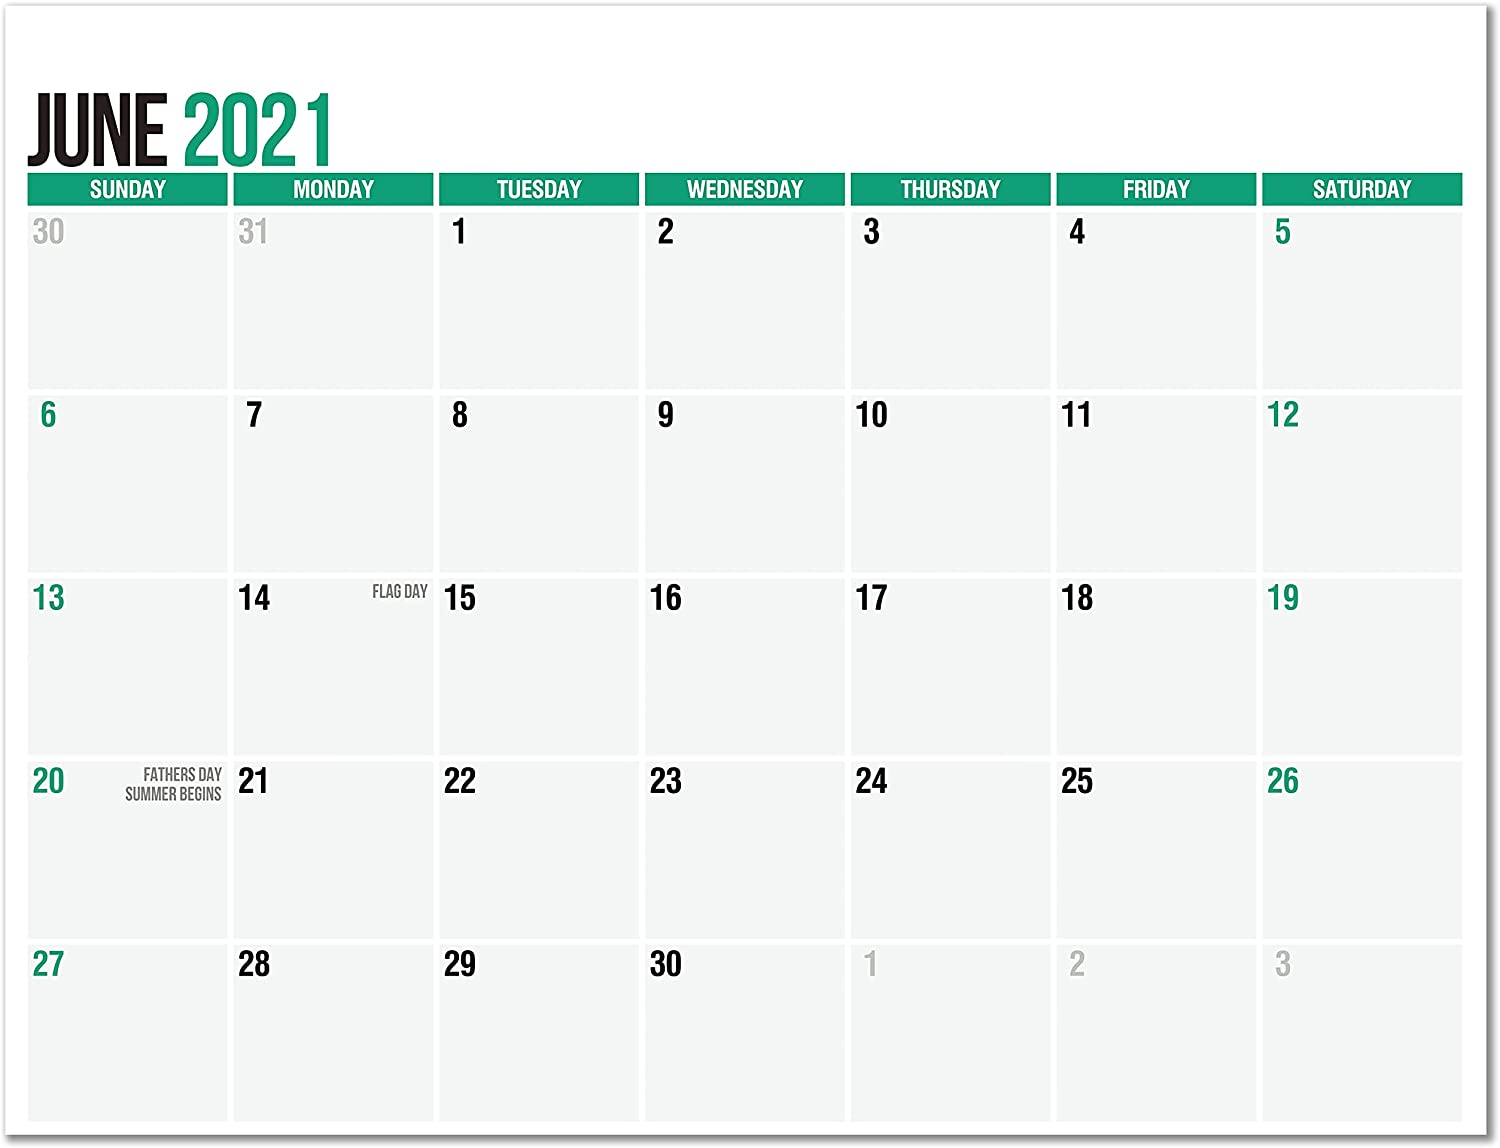 SplightPrints Magnetic Fridge Calendar Directly managed store Pad from June Dec to Sale price 2021